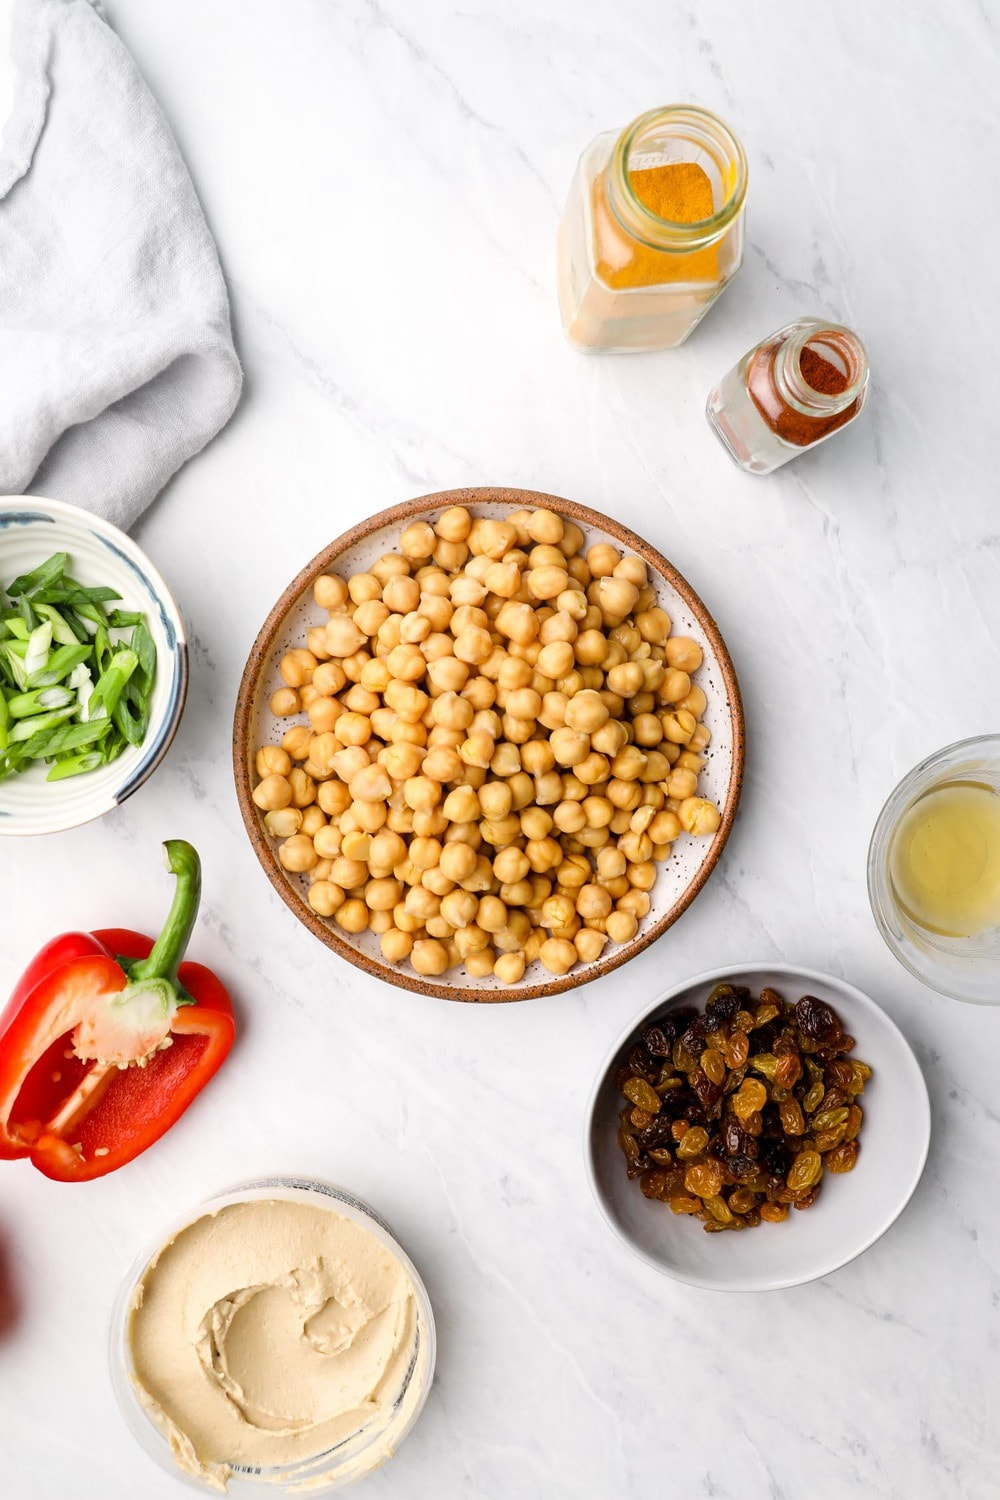 Ingredients needed to make  Curry Chickpea Salad in bowls.